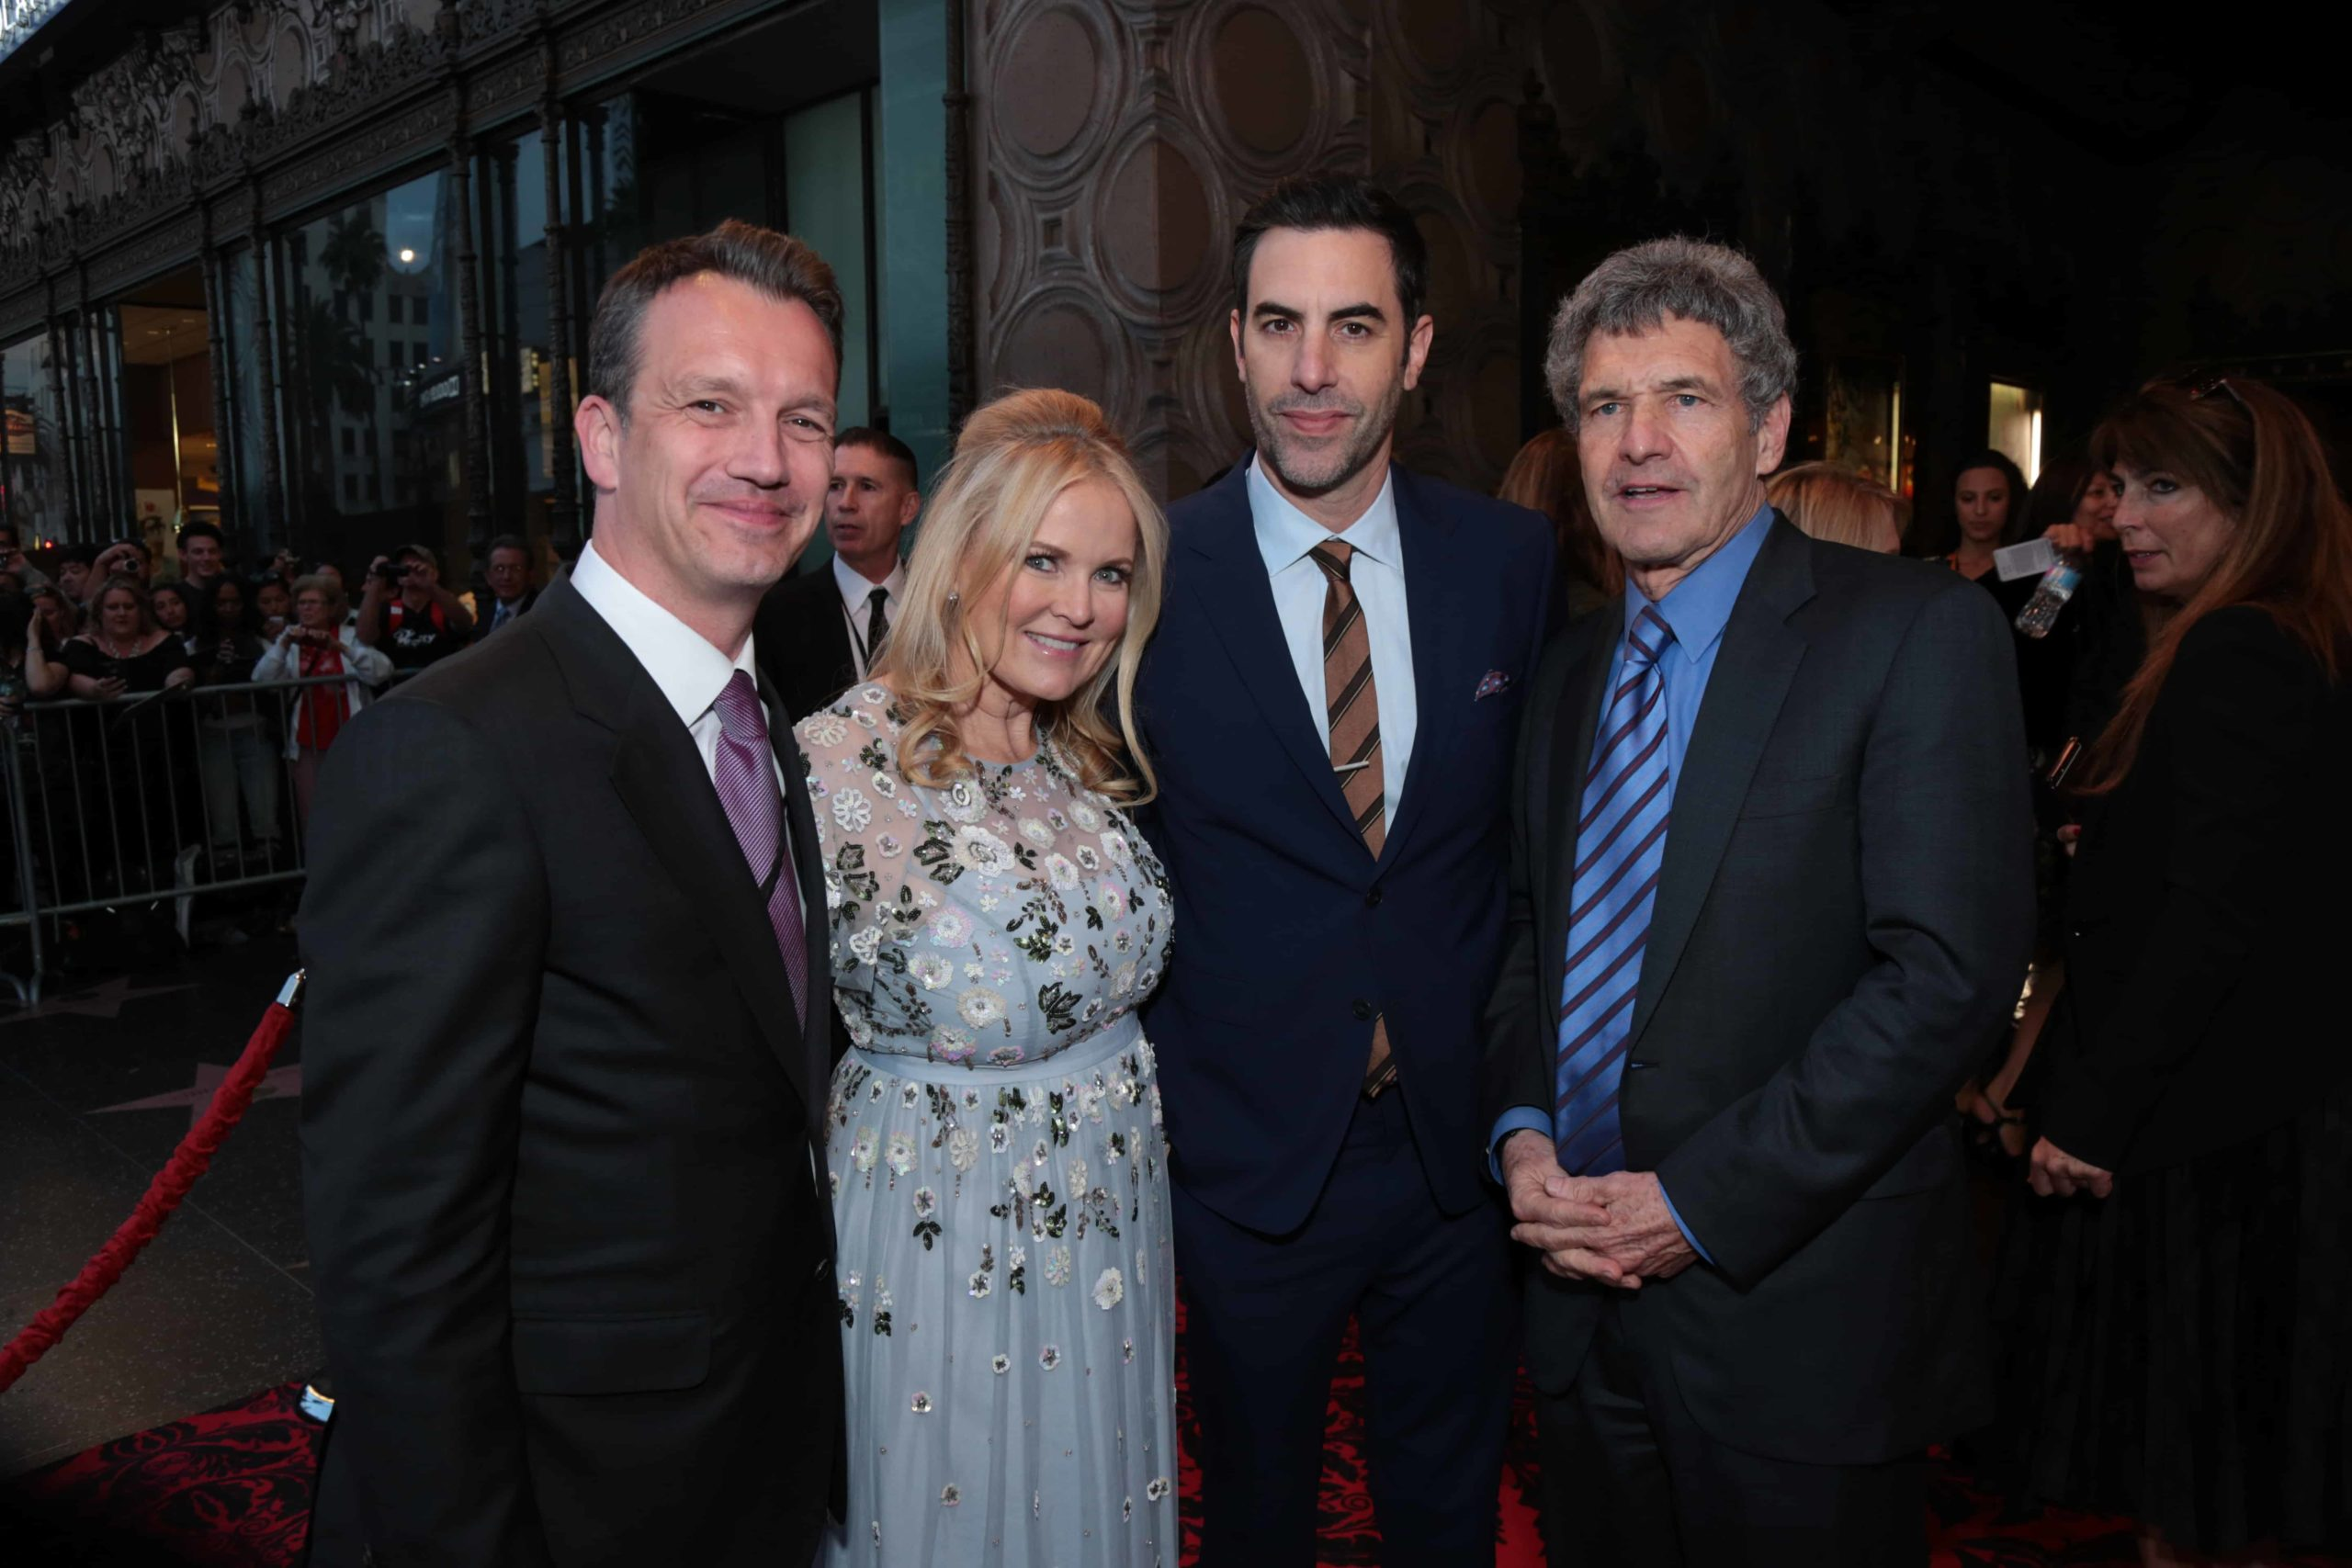 """Shawn Bailey, Suzanne Todd, Sacha Baron Cohen, Alan Horn pose together at The US Premiere of Disney's """"Alice Through the Looking Glass"""" at the El Capitan Theater in Los Angeles, CA on Monday, May 23, 2016. (Photo: Alex J. Berliner/ABImages)"""